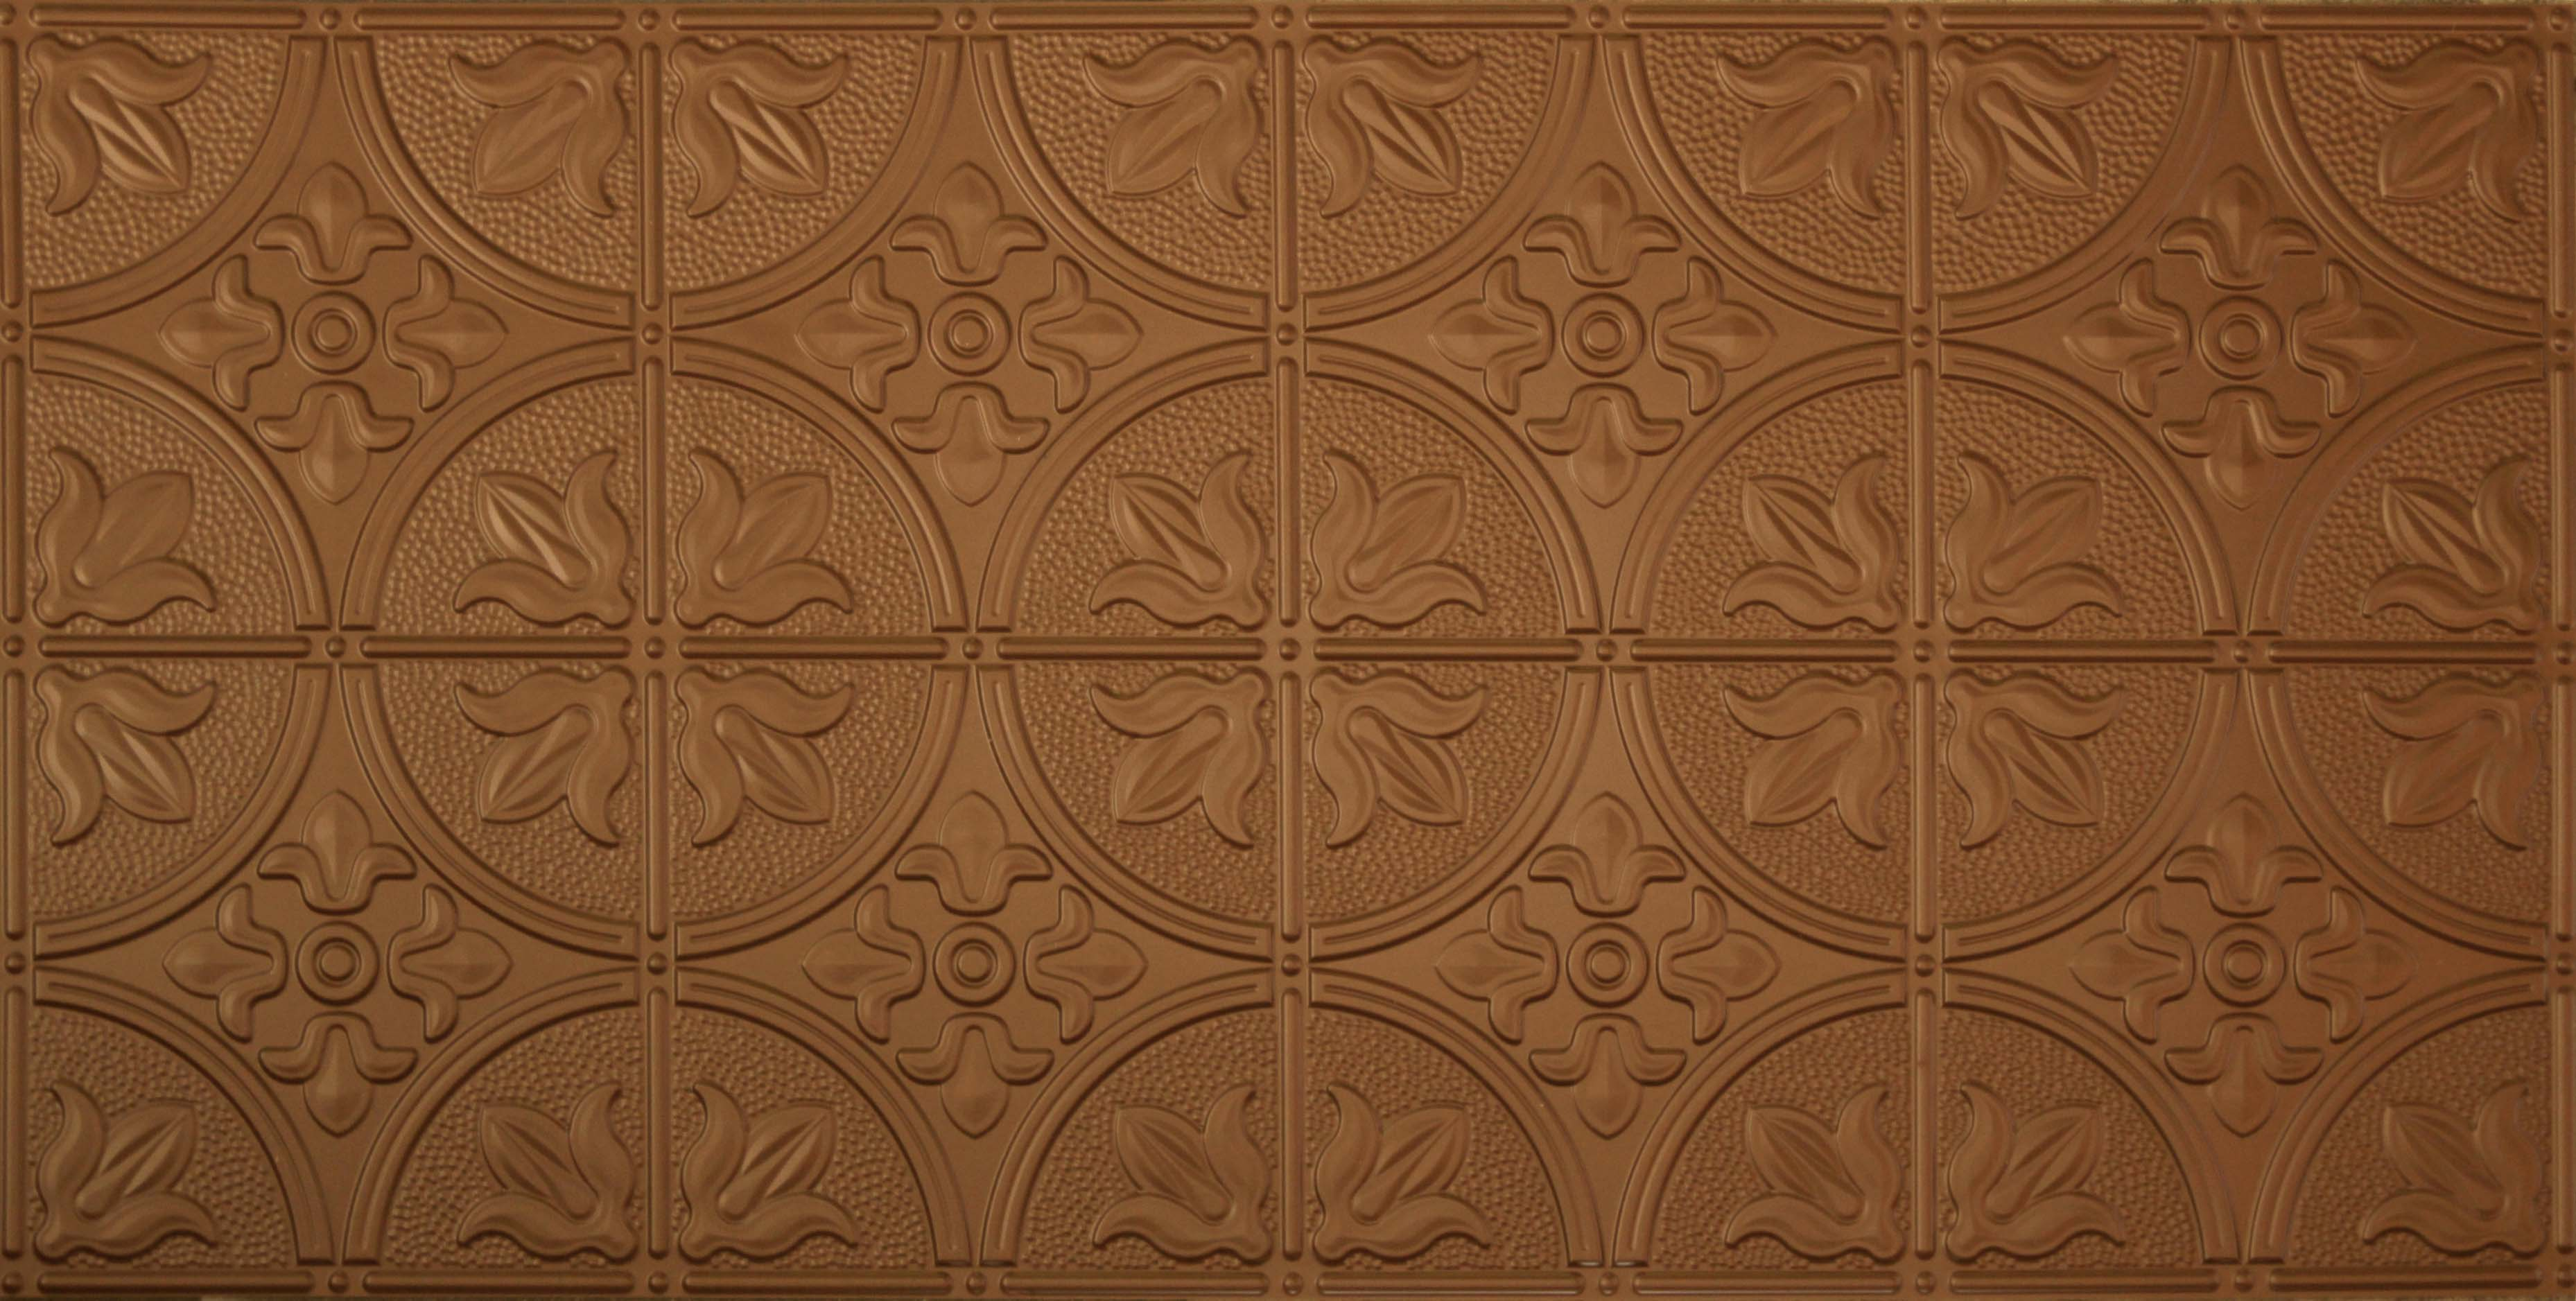 options acoustical panels affordable white solid for raised and traditional ceilings with decorative embossed these tile ceiling provide color grids tiles designs